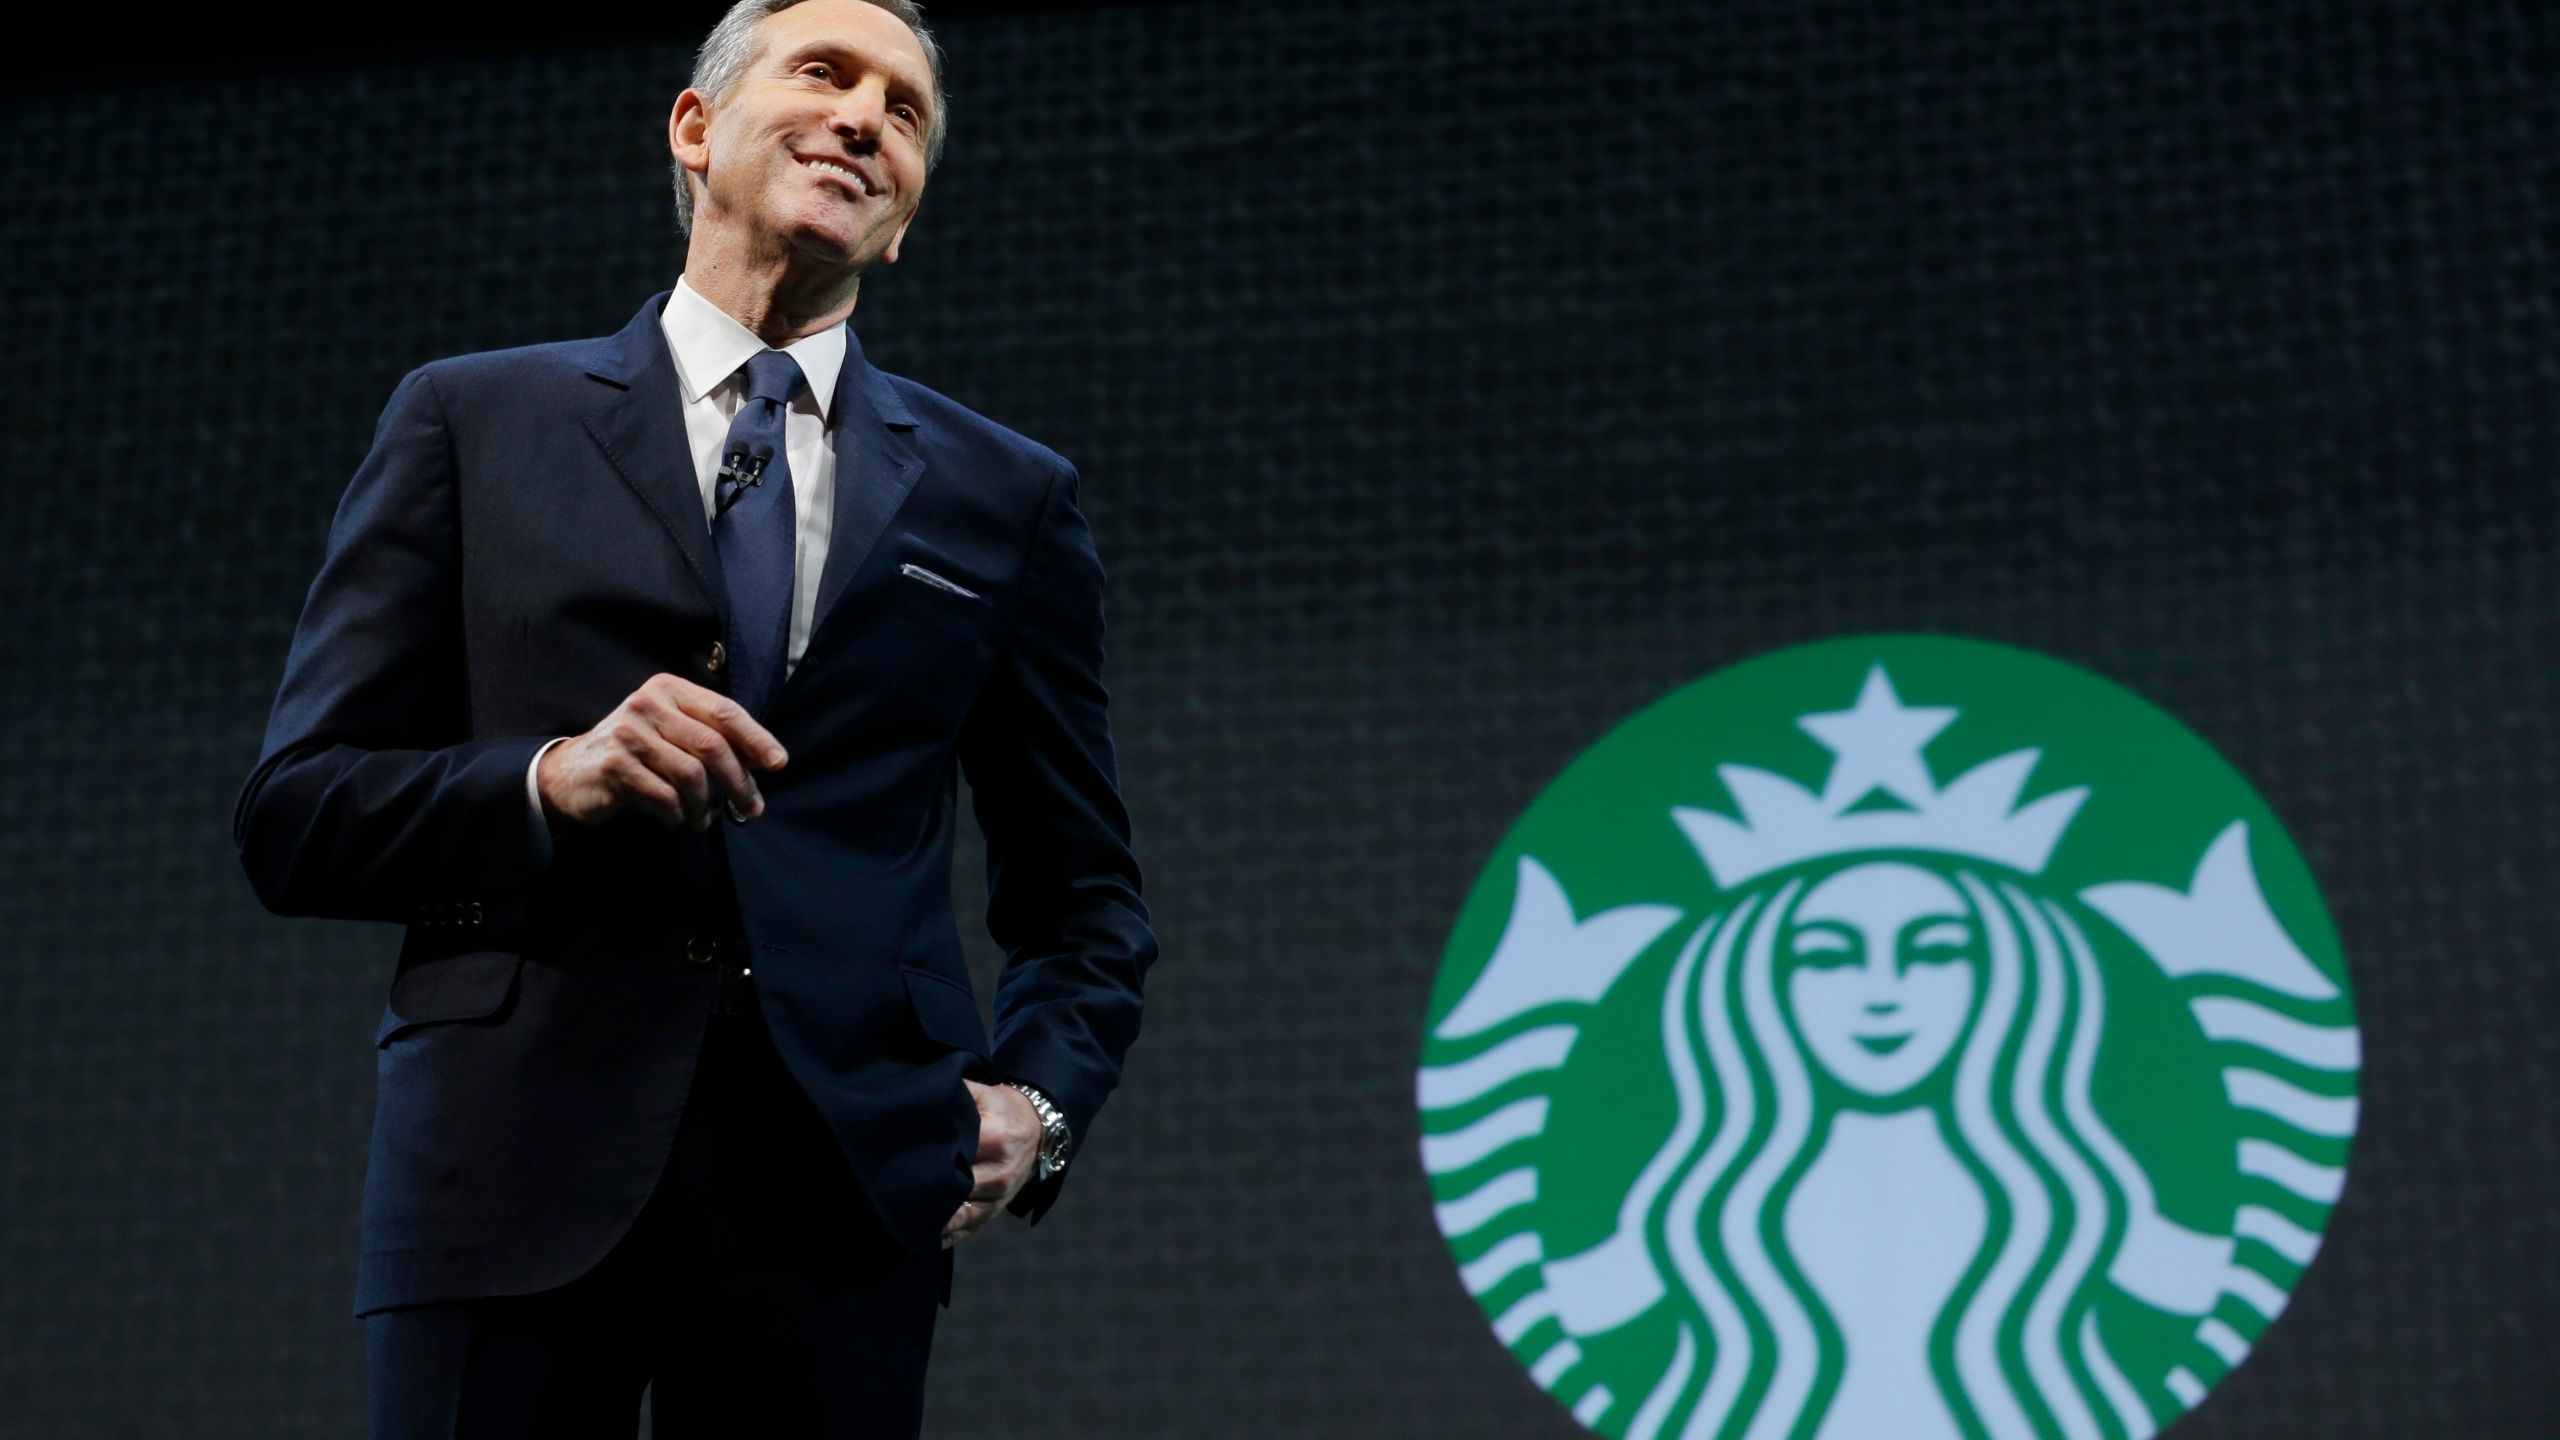 Ex-Starbucks CEO Schultz rules out independent 2020 bid